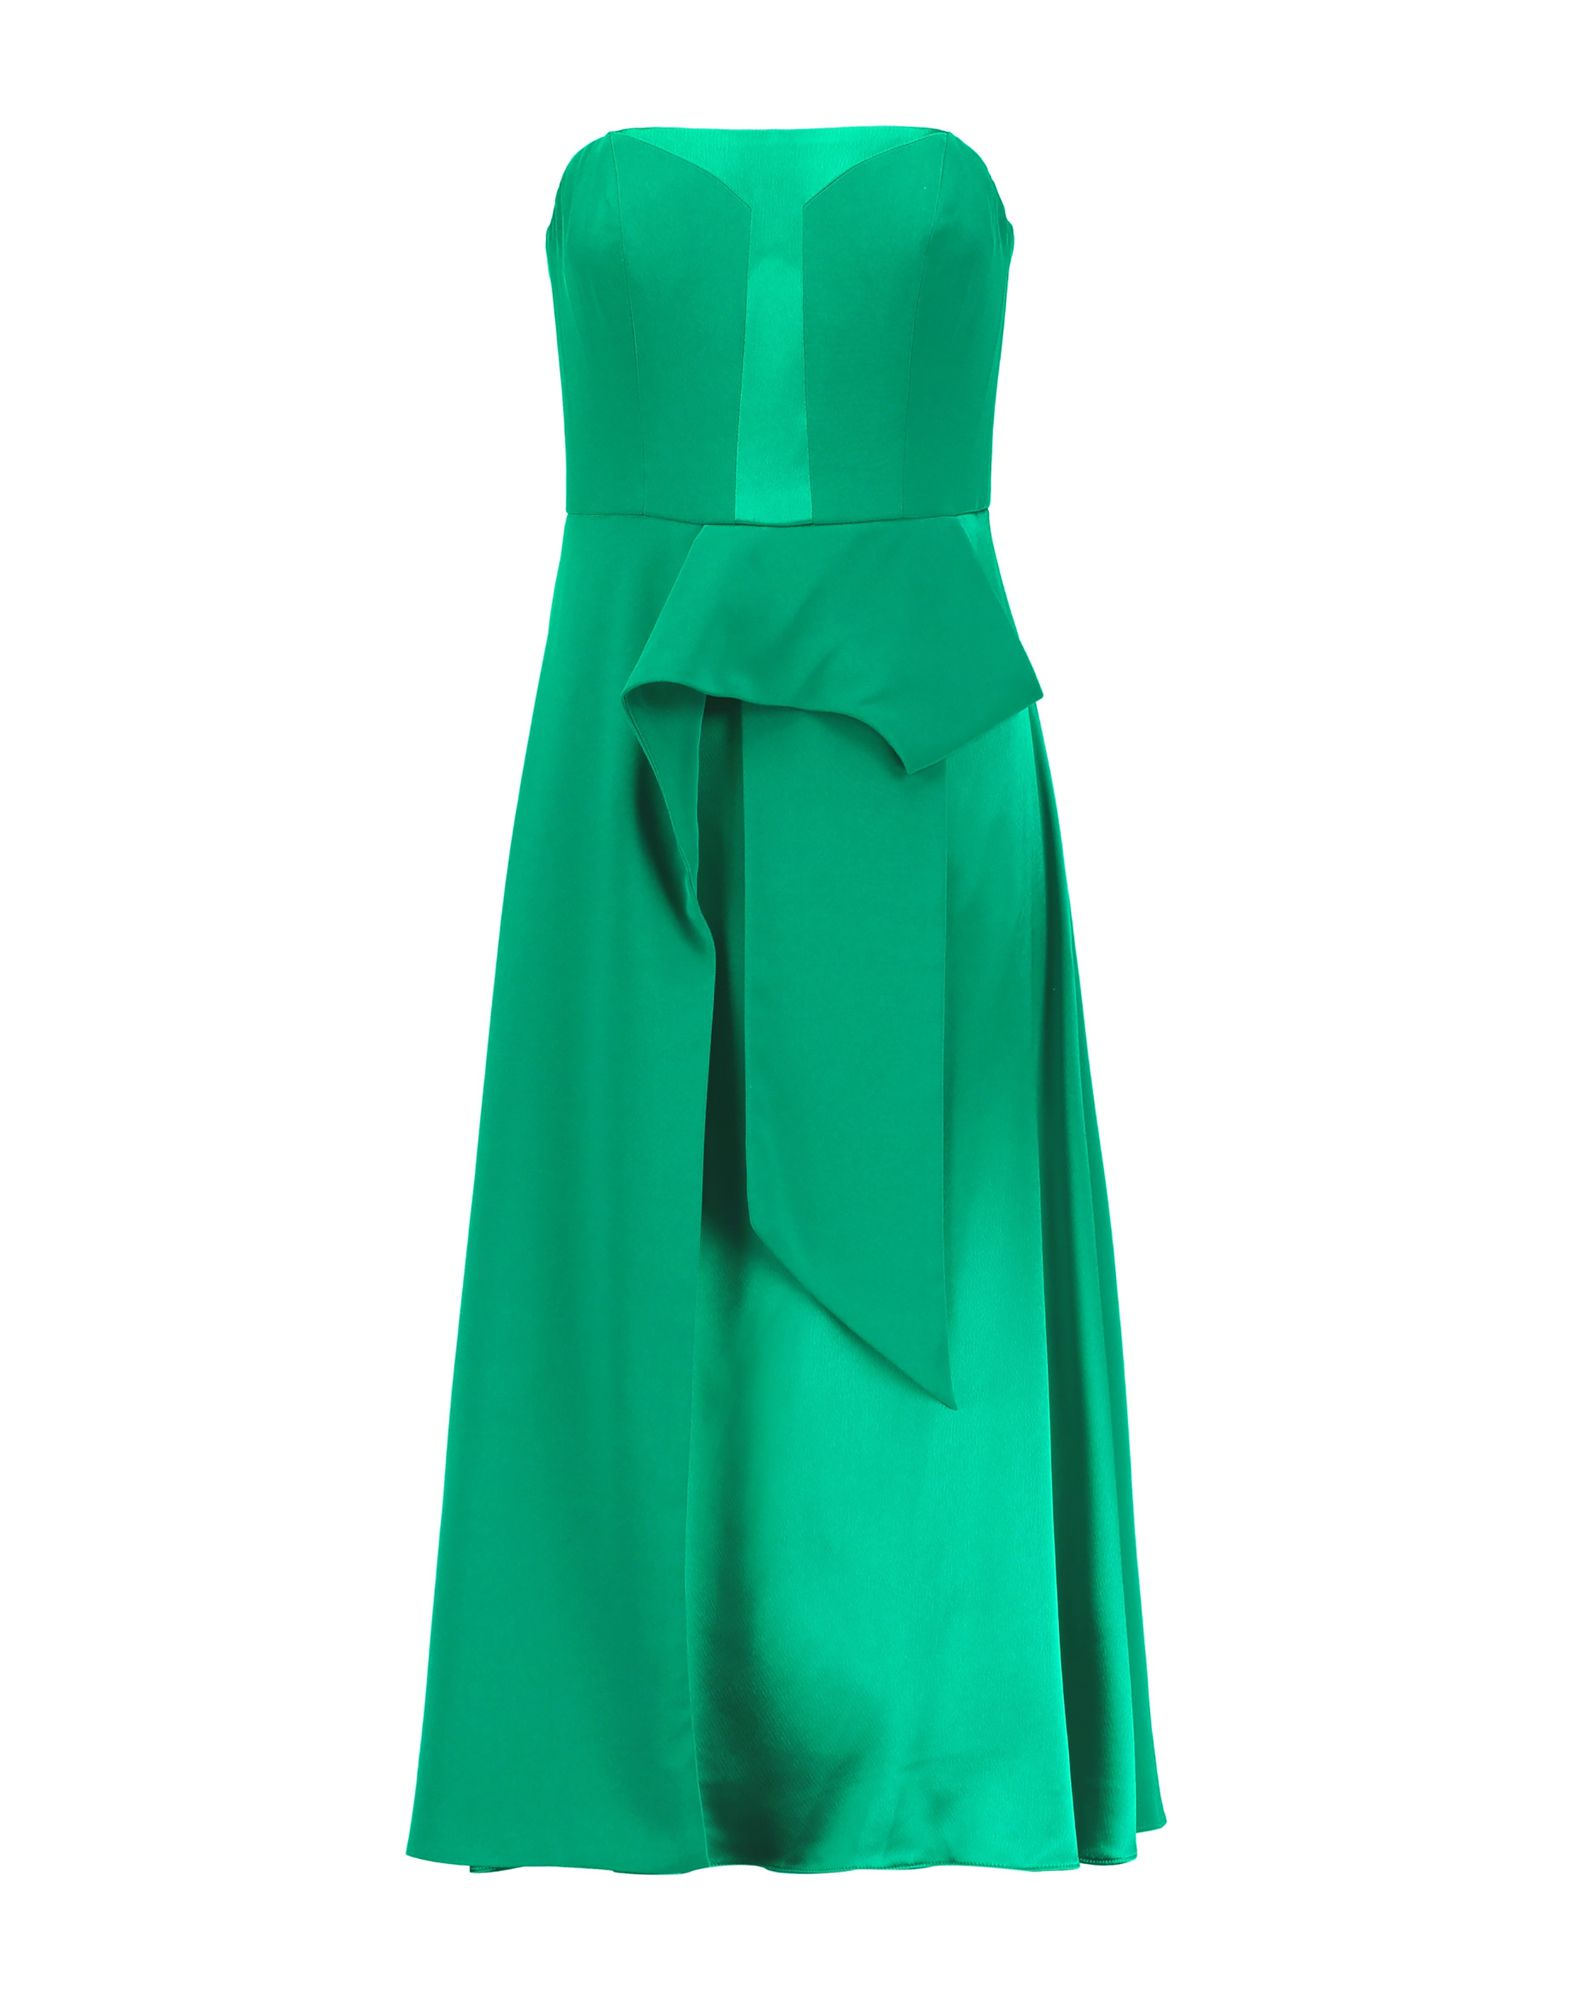 MIKAEL AGHAL Knee-Length Dresses in Green